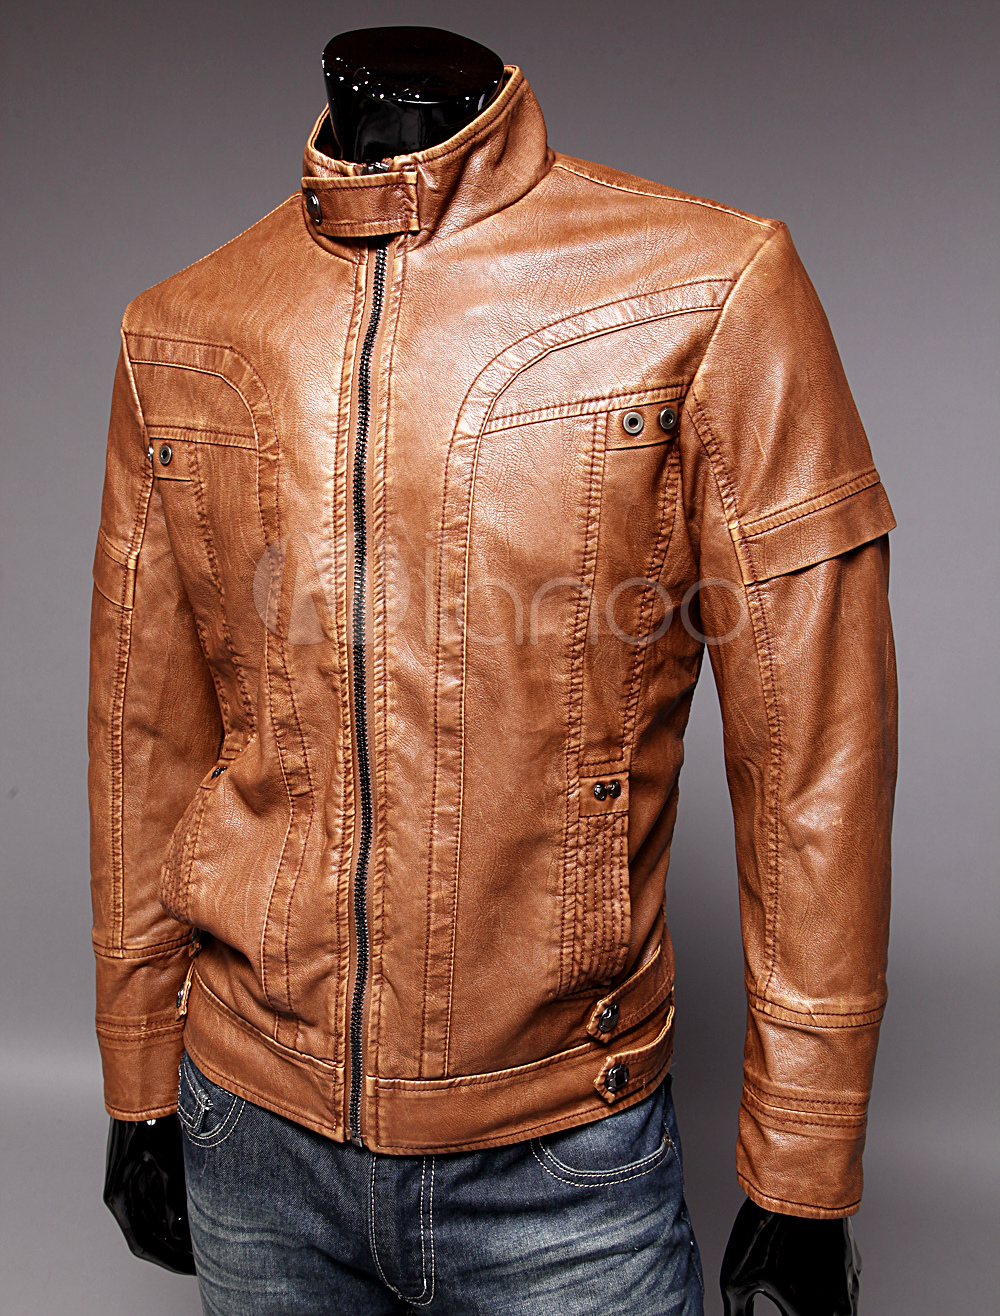 Leather jackets for me